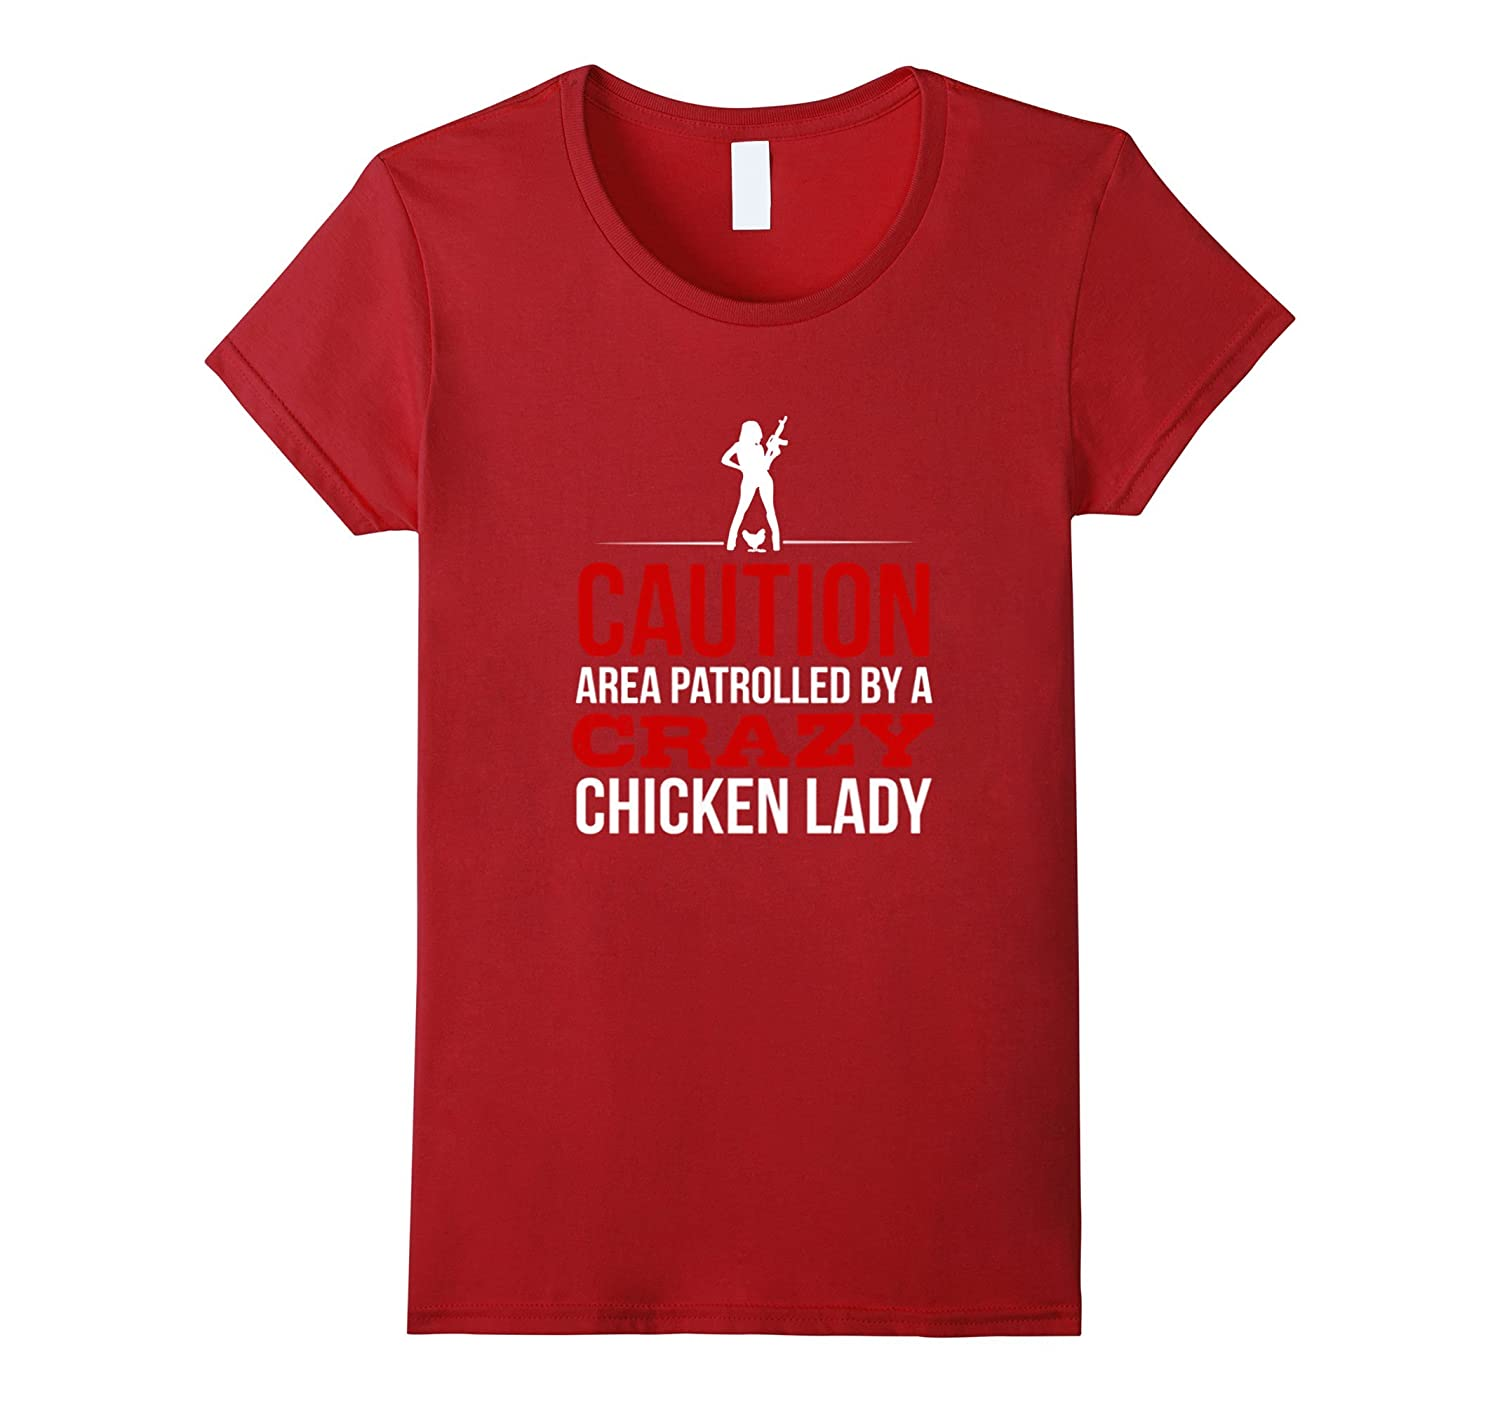 Area patrolled by crazy chicken lady Tshirt